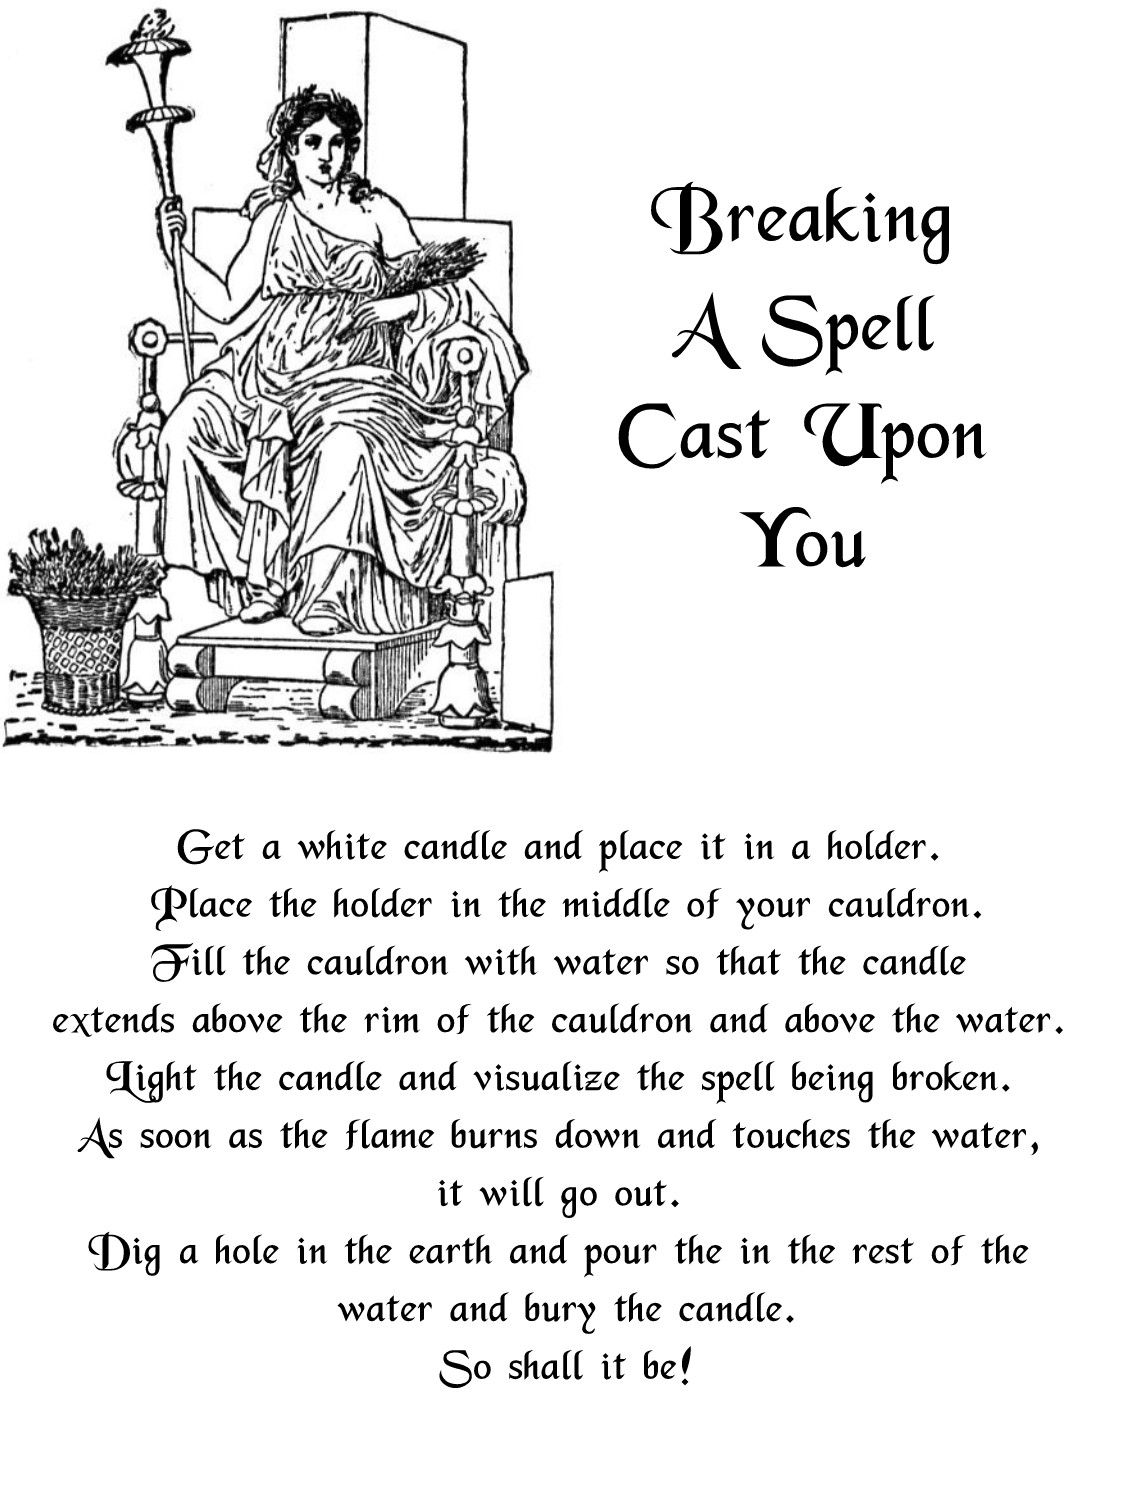 Breaking a spell cast upon you